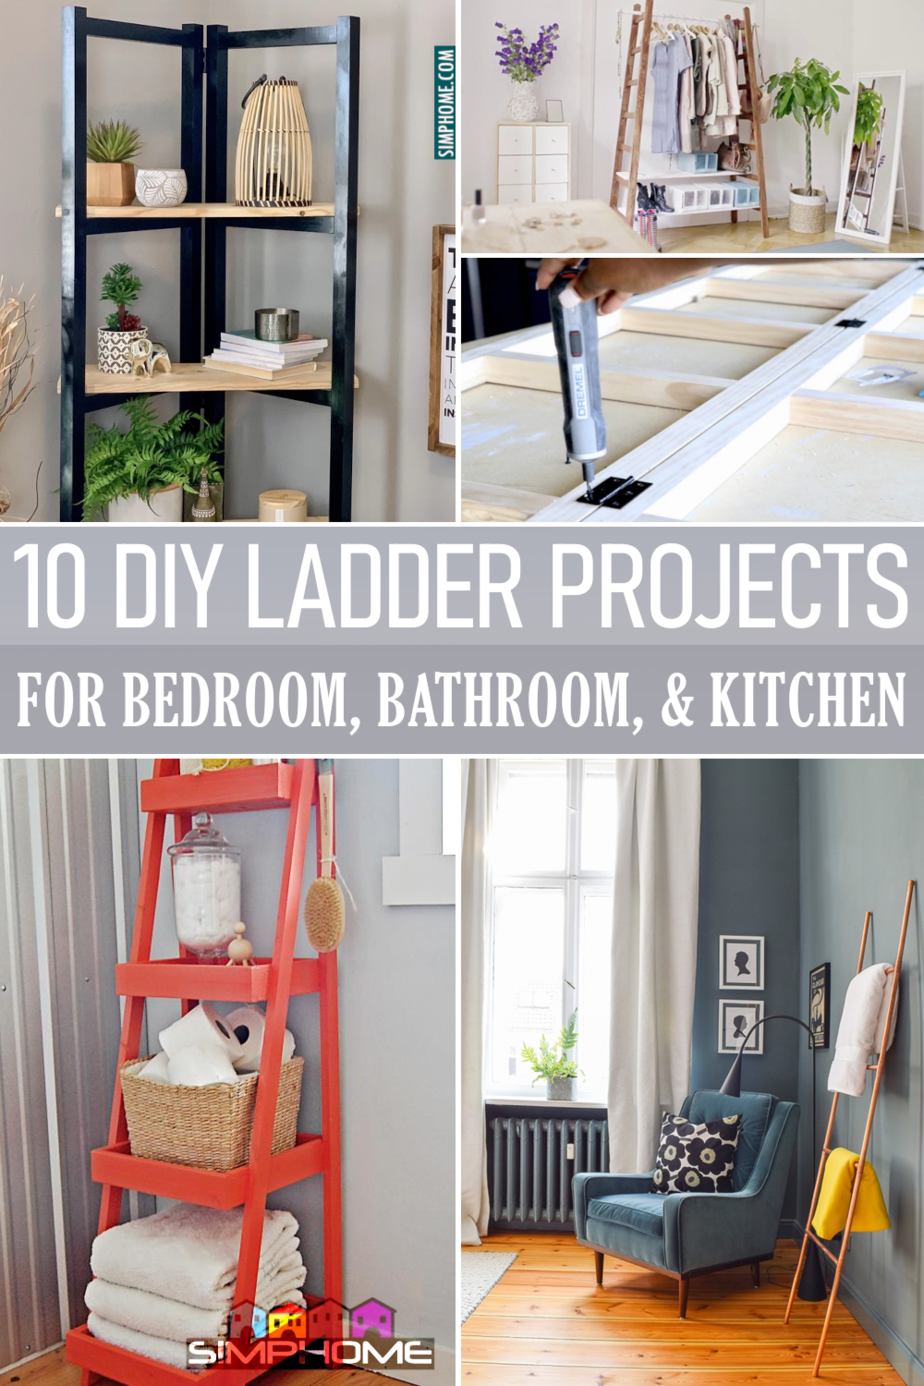 10 DIY Ladder Project Ideas for Your Bedroom Bathroom and Kitchen via Simphome.comFeatured